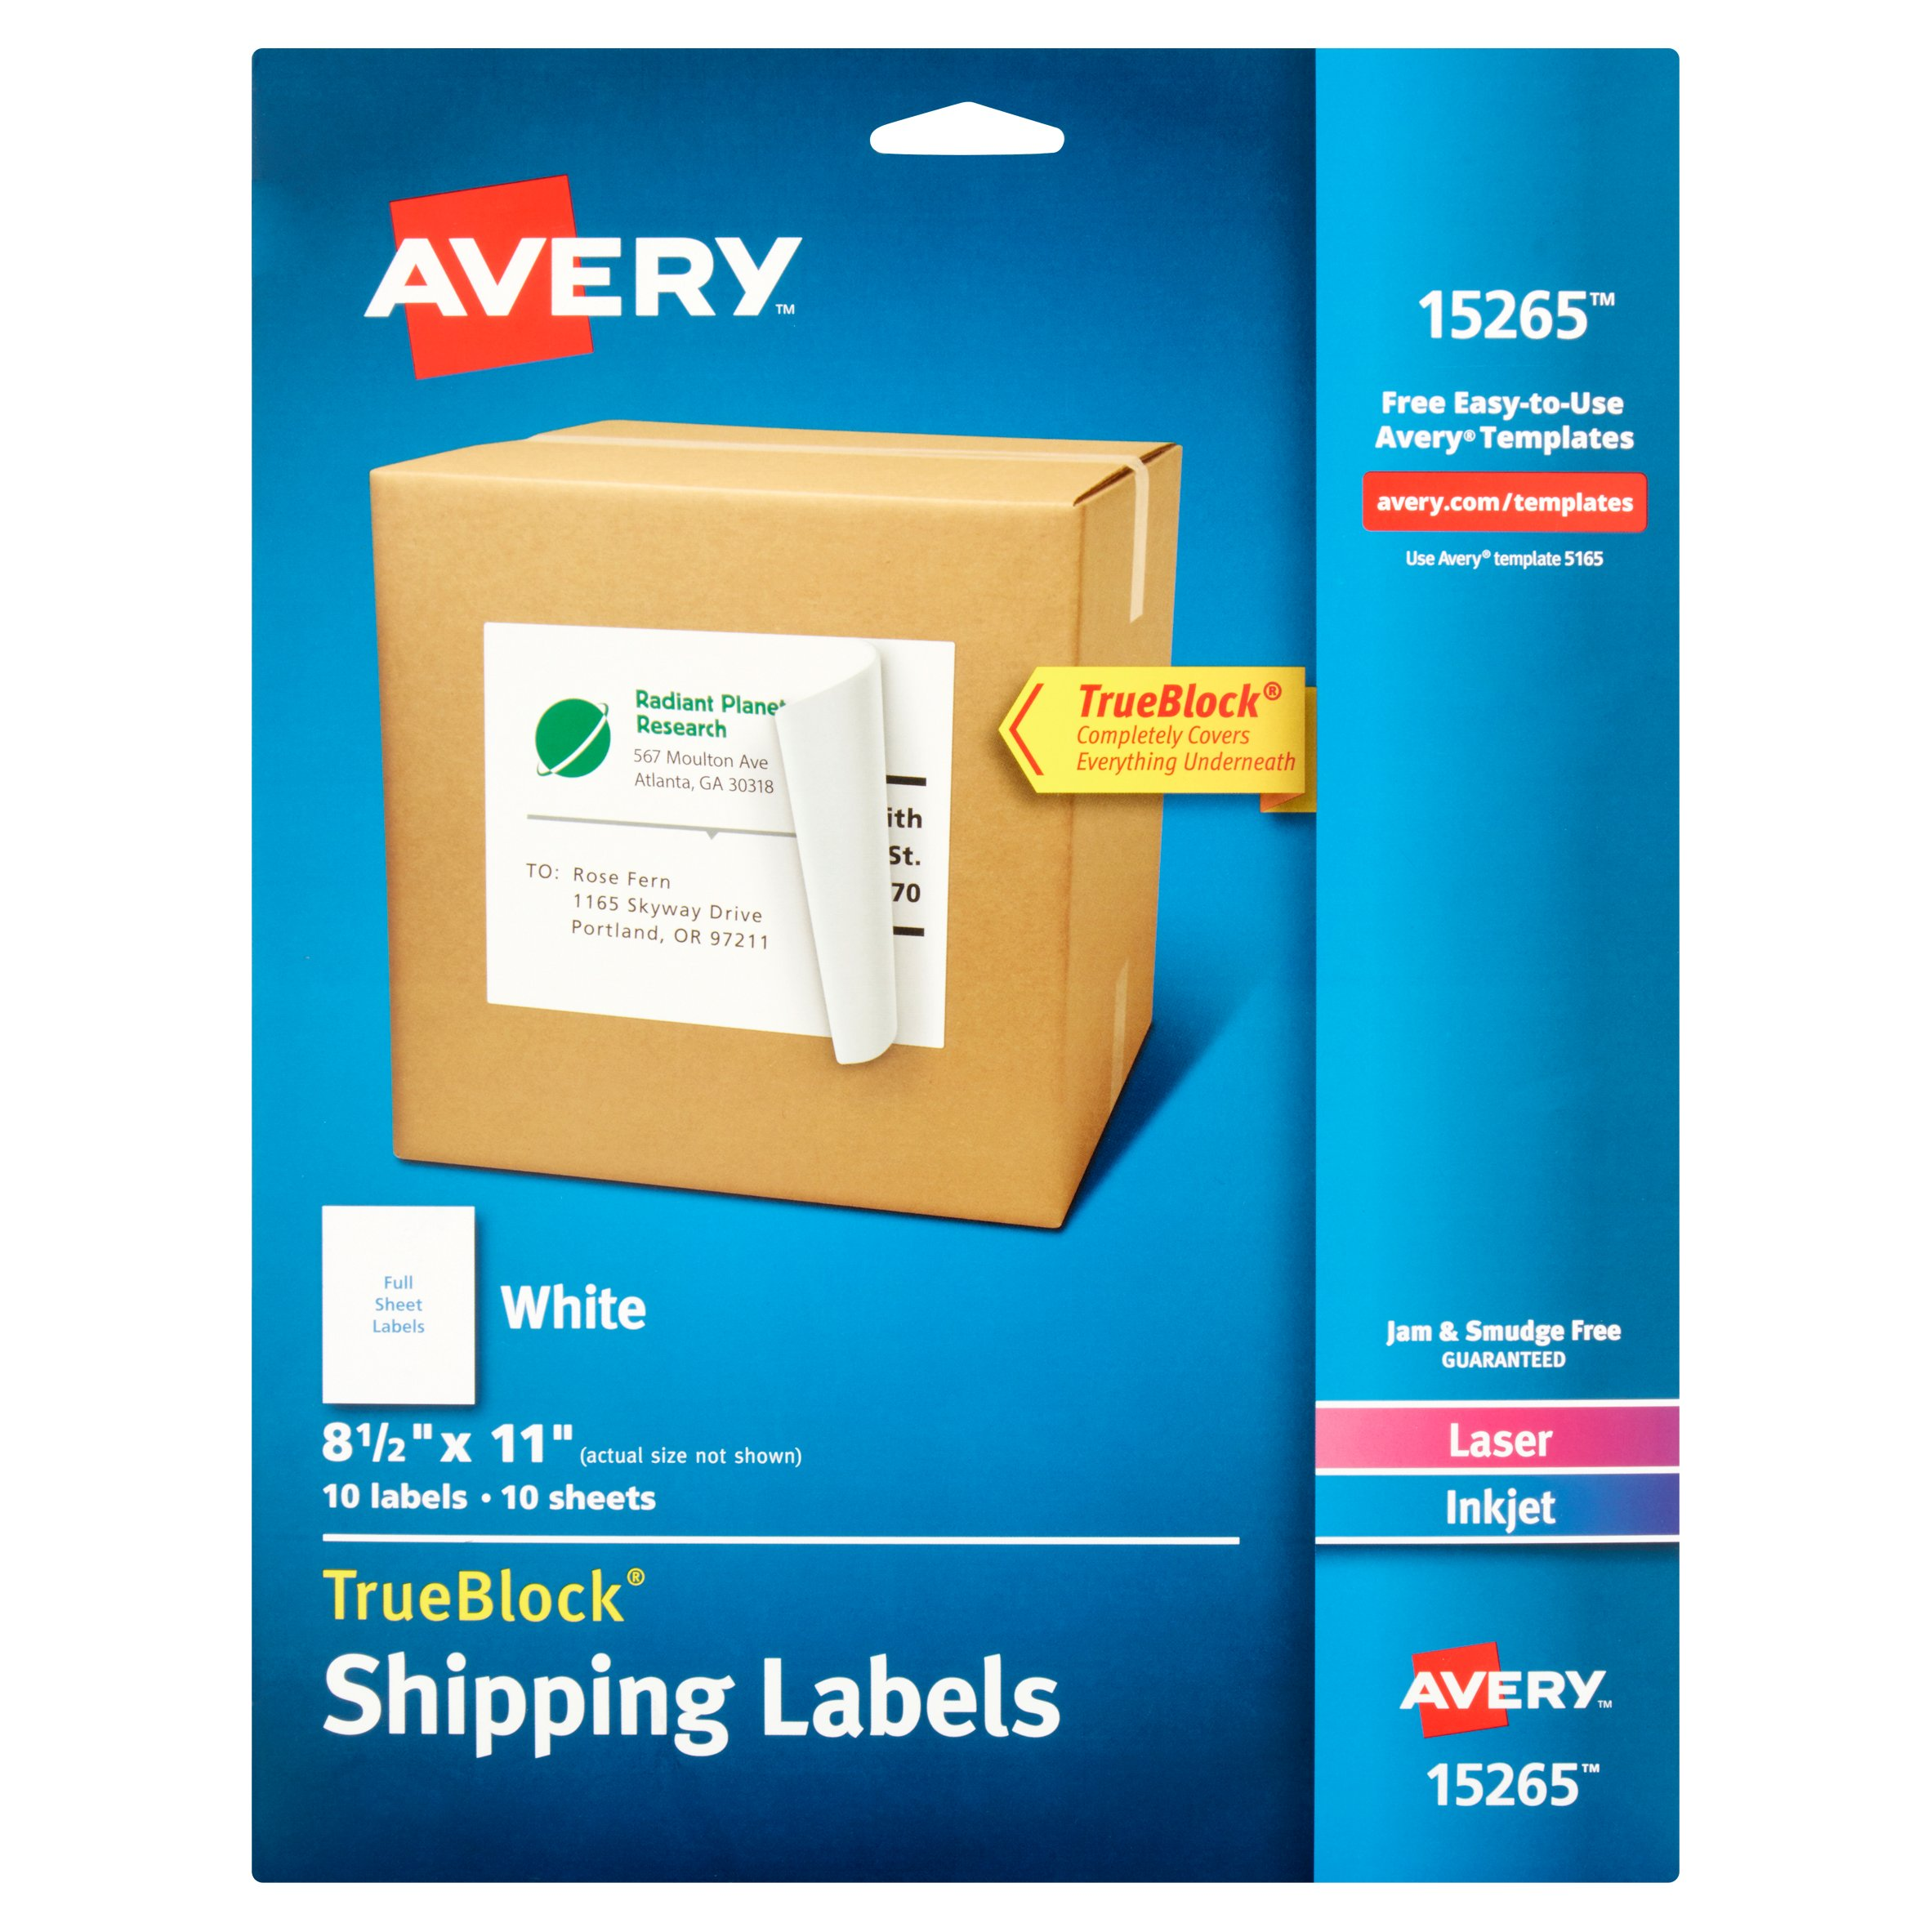 Avery white shipping labels with trueblock technology 15265 8 12 avery white shipping labels with trueblock technology 15265 8 12 x 11 laserinkjet 10pk walmart saigontimesfo